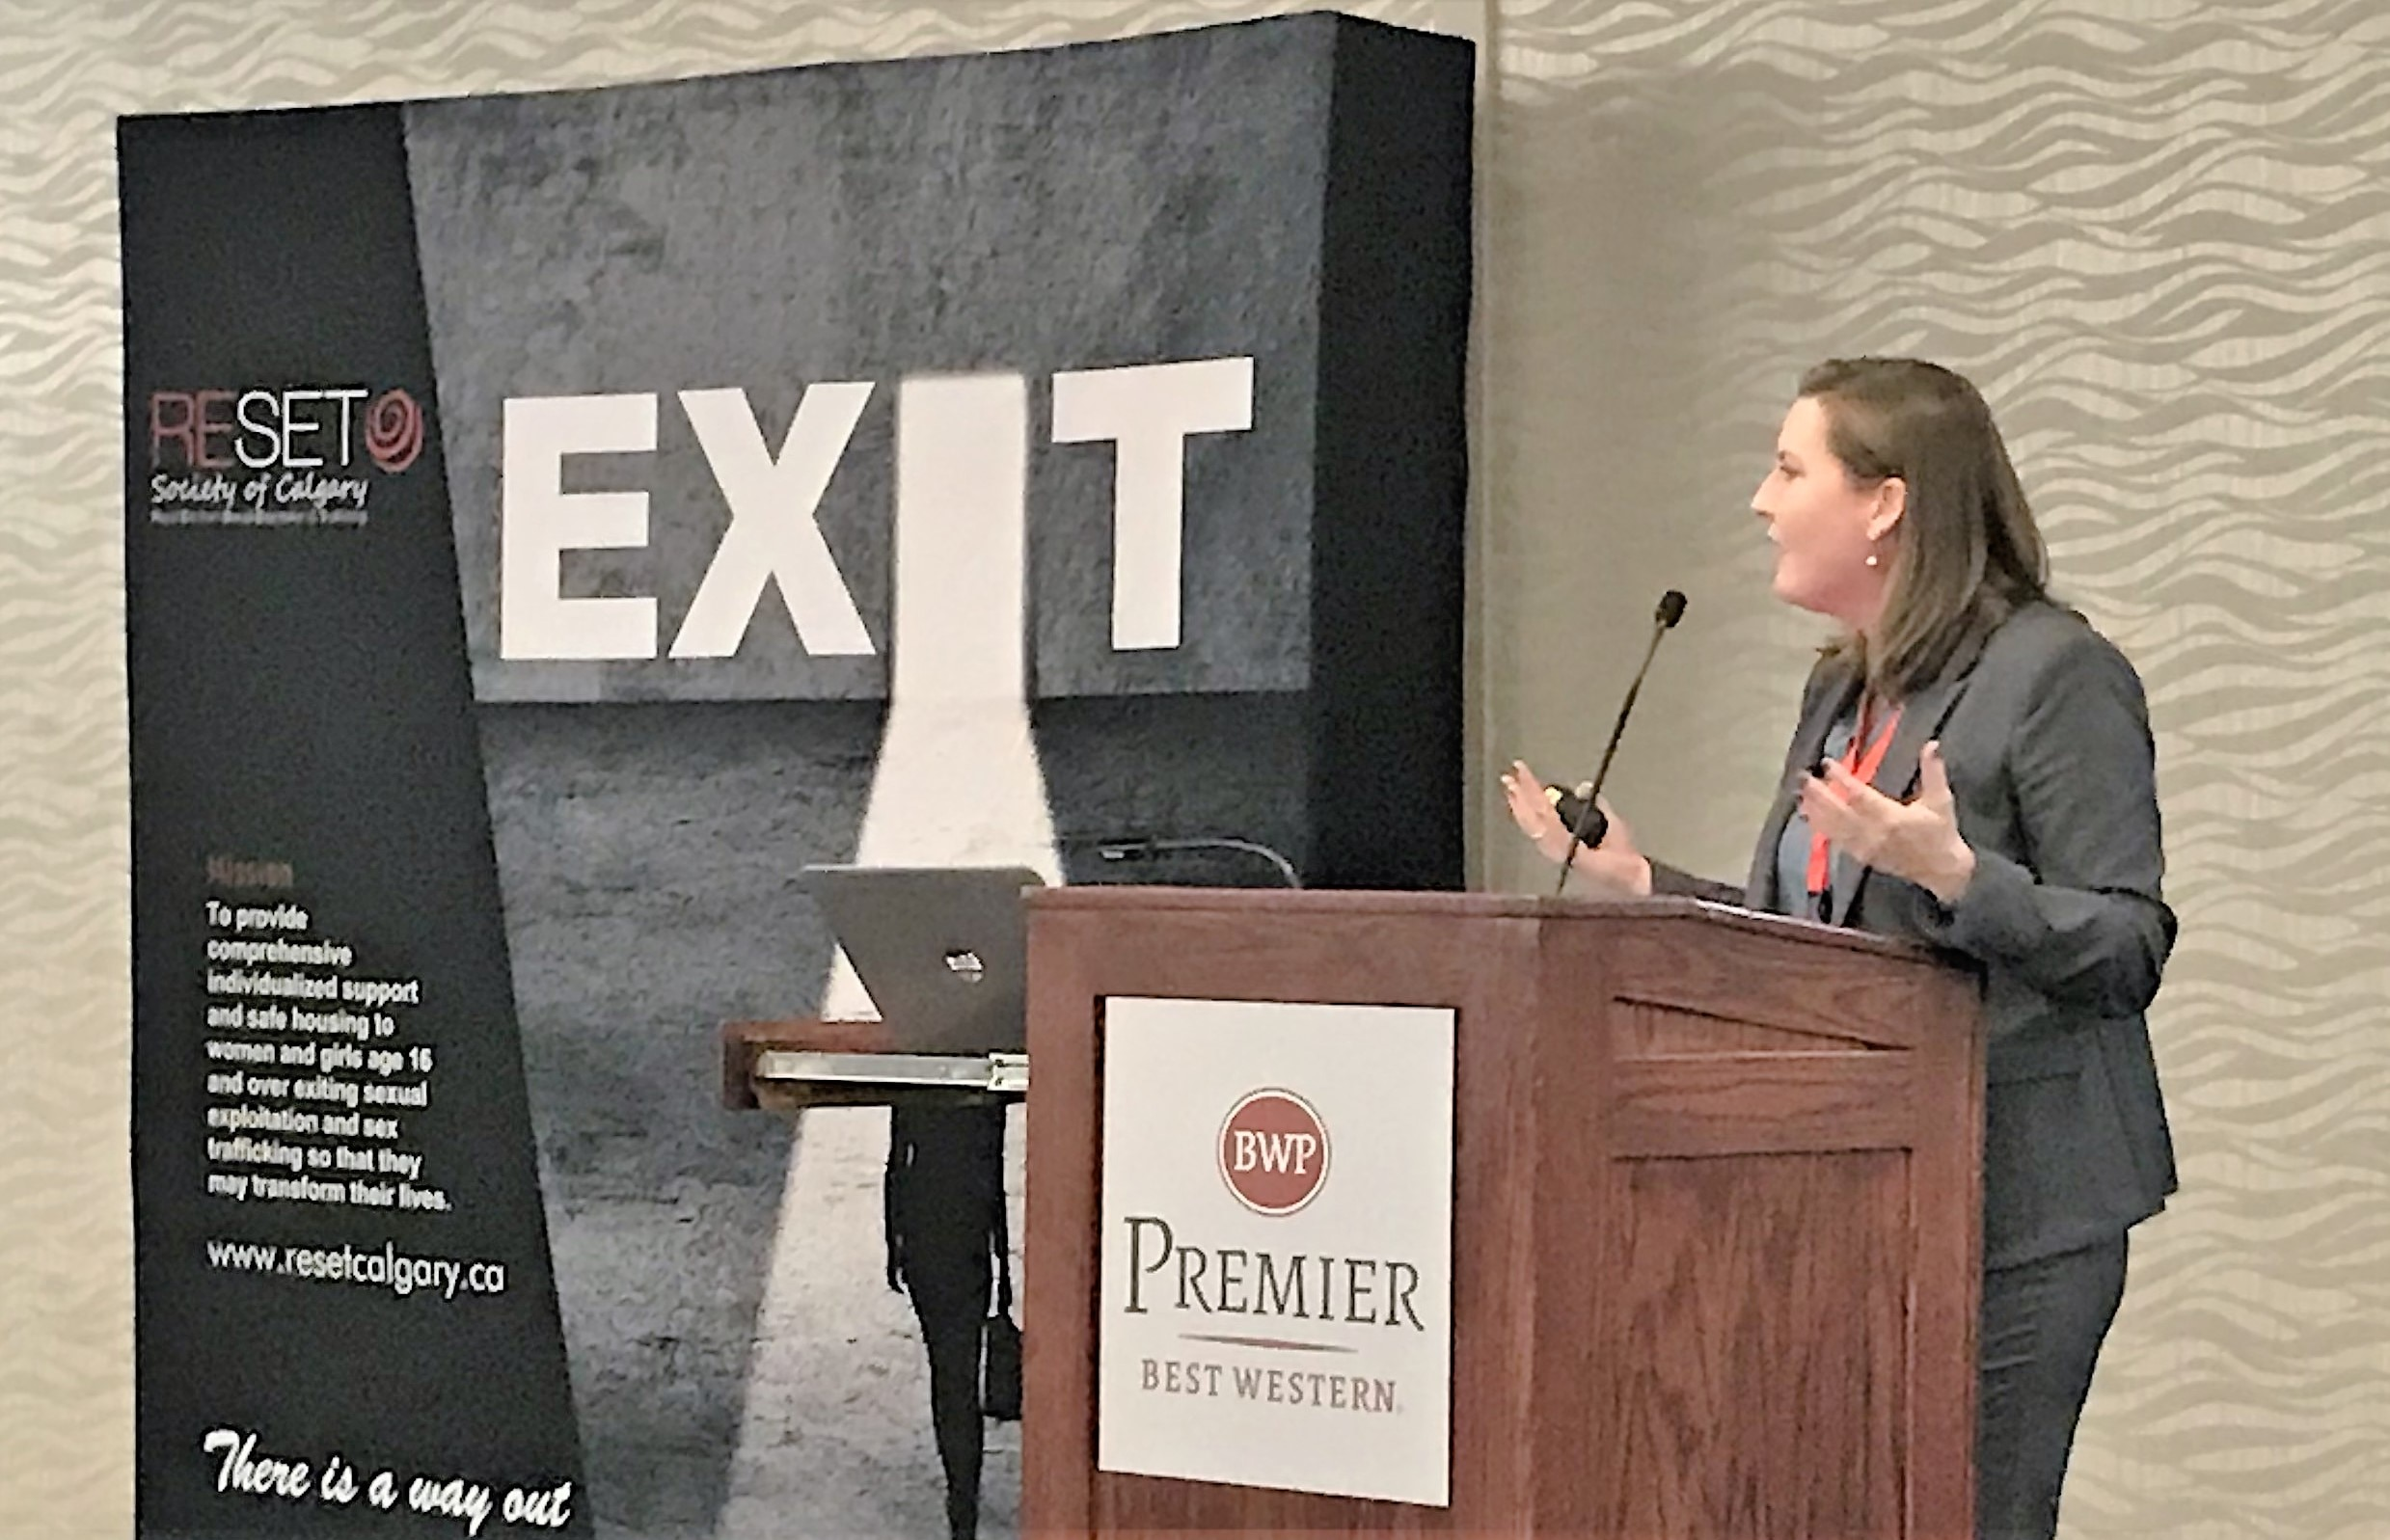 Diplomatic Security Service Special Agent Kate Langston presents at the Sexual Exploitation Training and Awareness Conference in Calgary, Canada, Sept. 24, 2019. (U.S. Department of State photo)